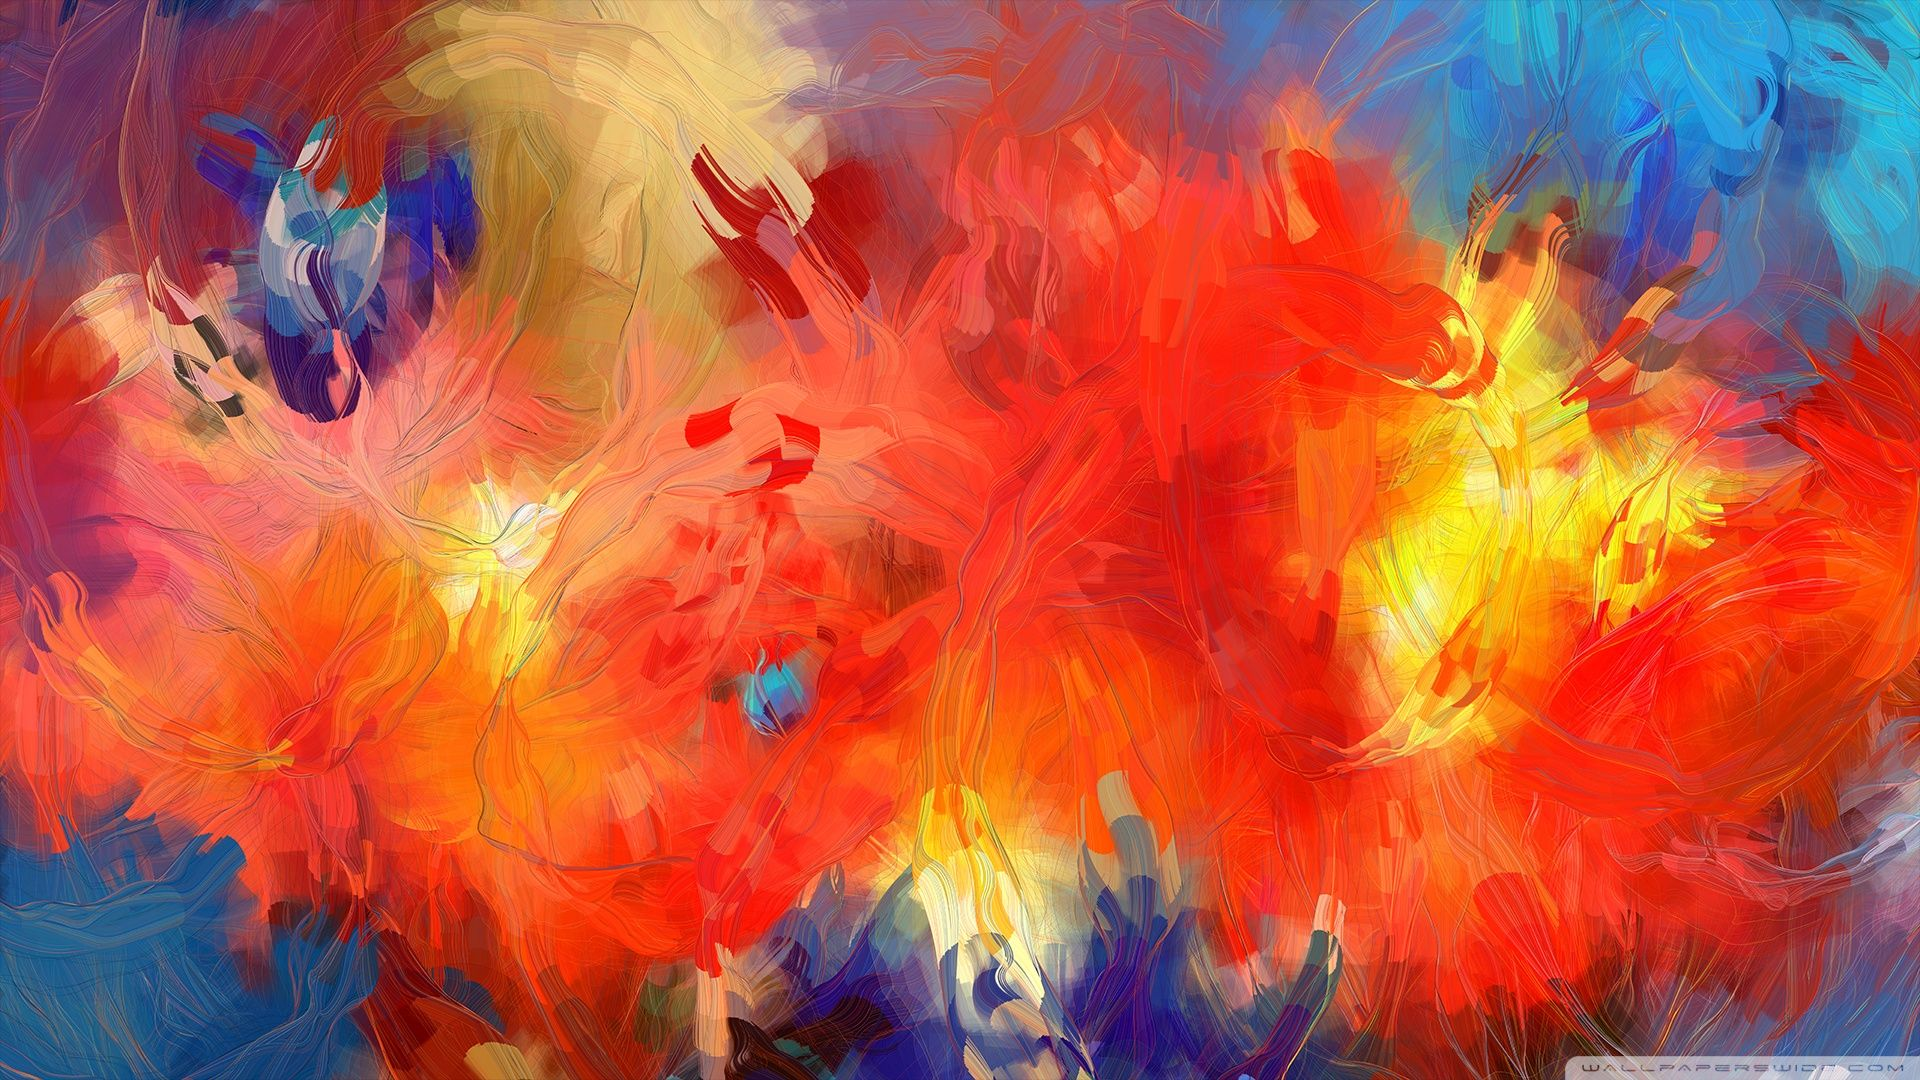 Abstract Painting Wallpaper For Android